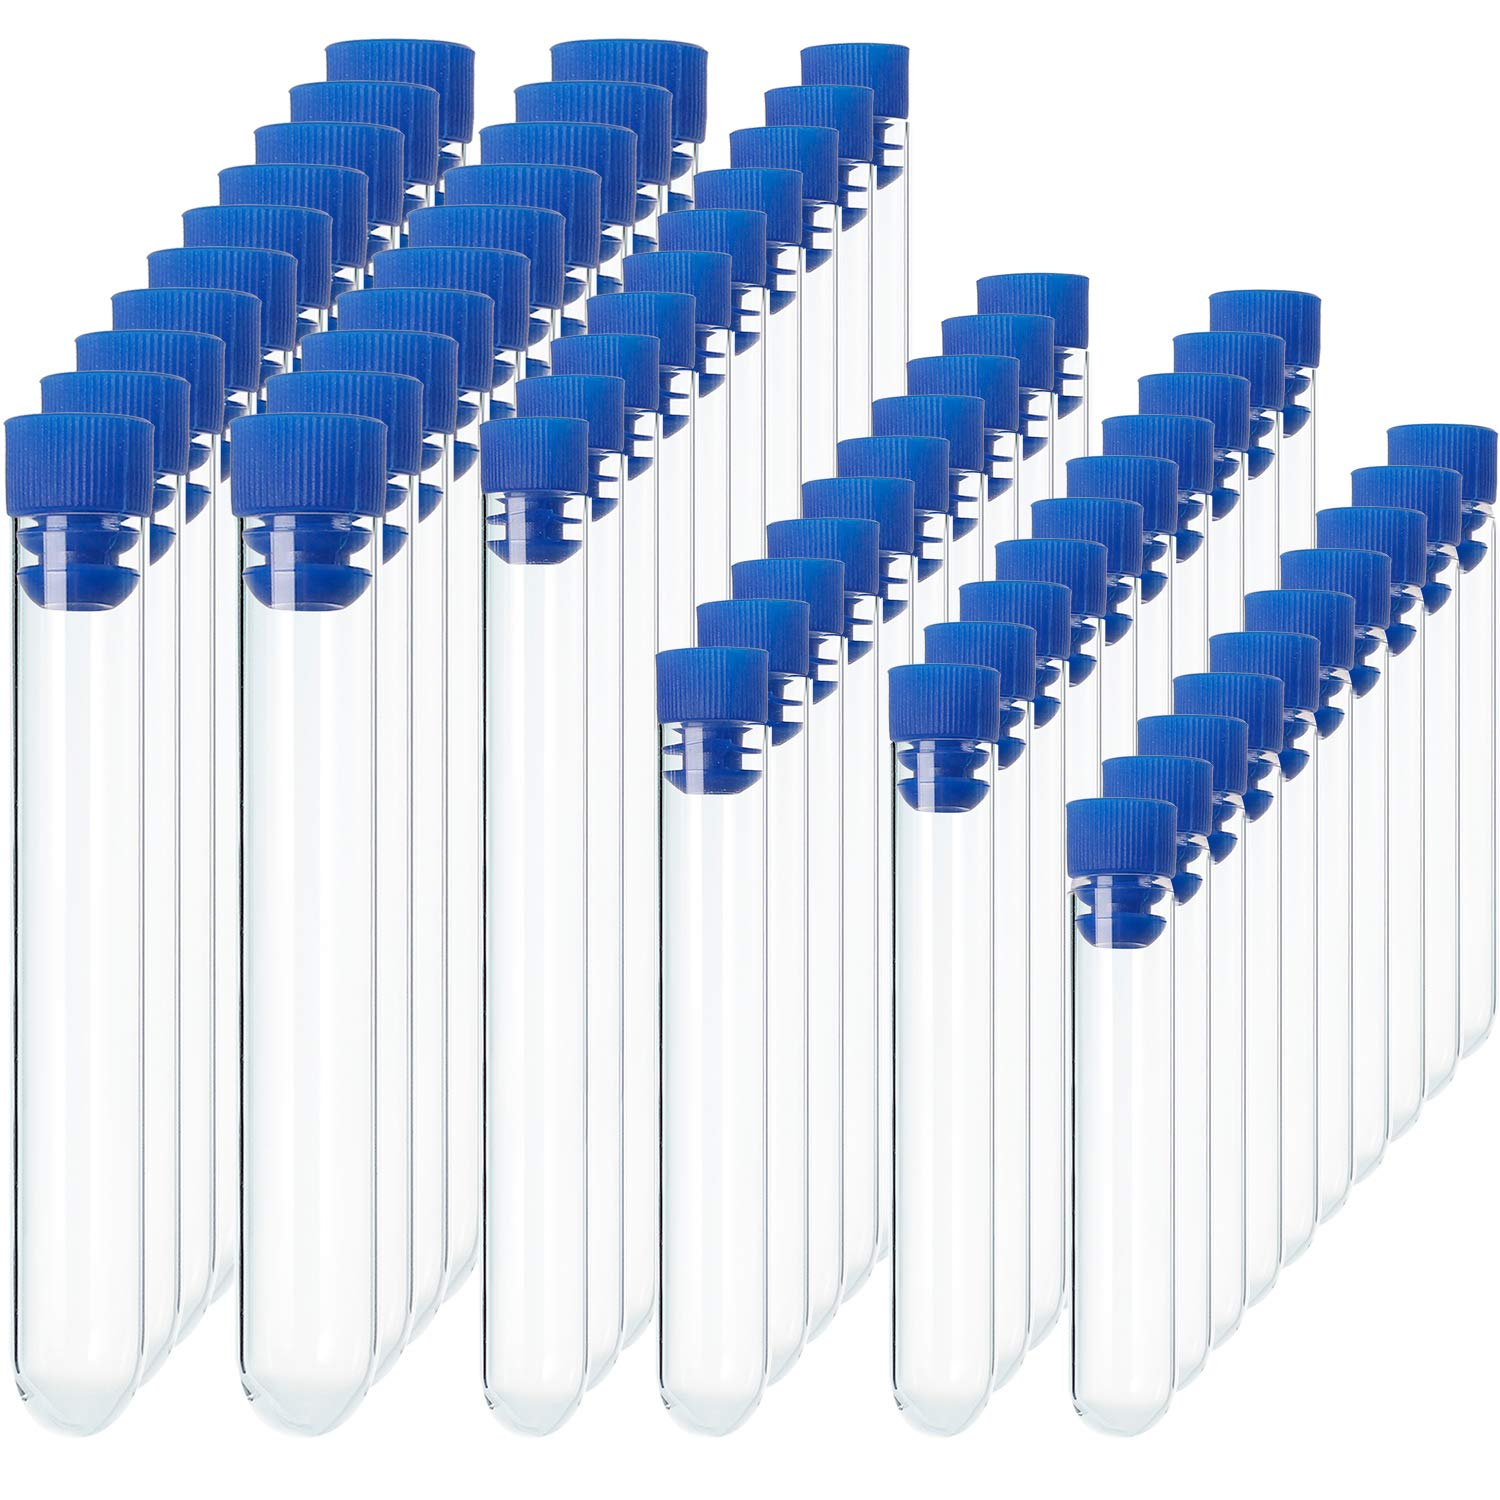 60 Pieces Clear Plastic Test Tubes with Blue Caps, 12 by 60 mm, 12 by 75 mm, 12 by 100 mm, 13 by 78 mm, 15 by 100 mm, 16 by 100 mm Pangda